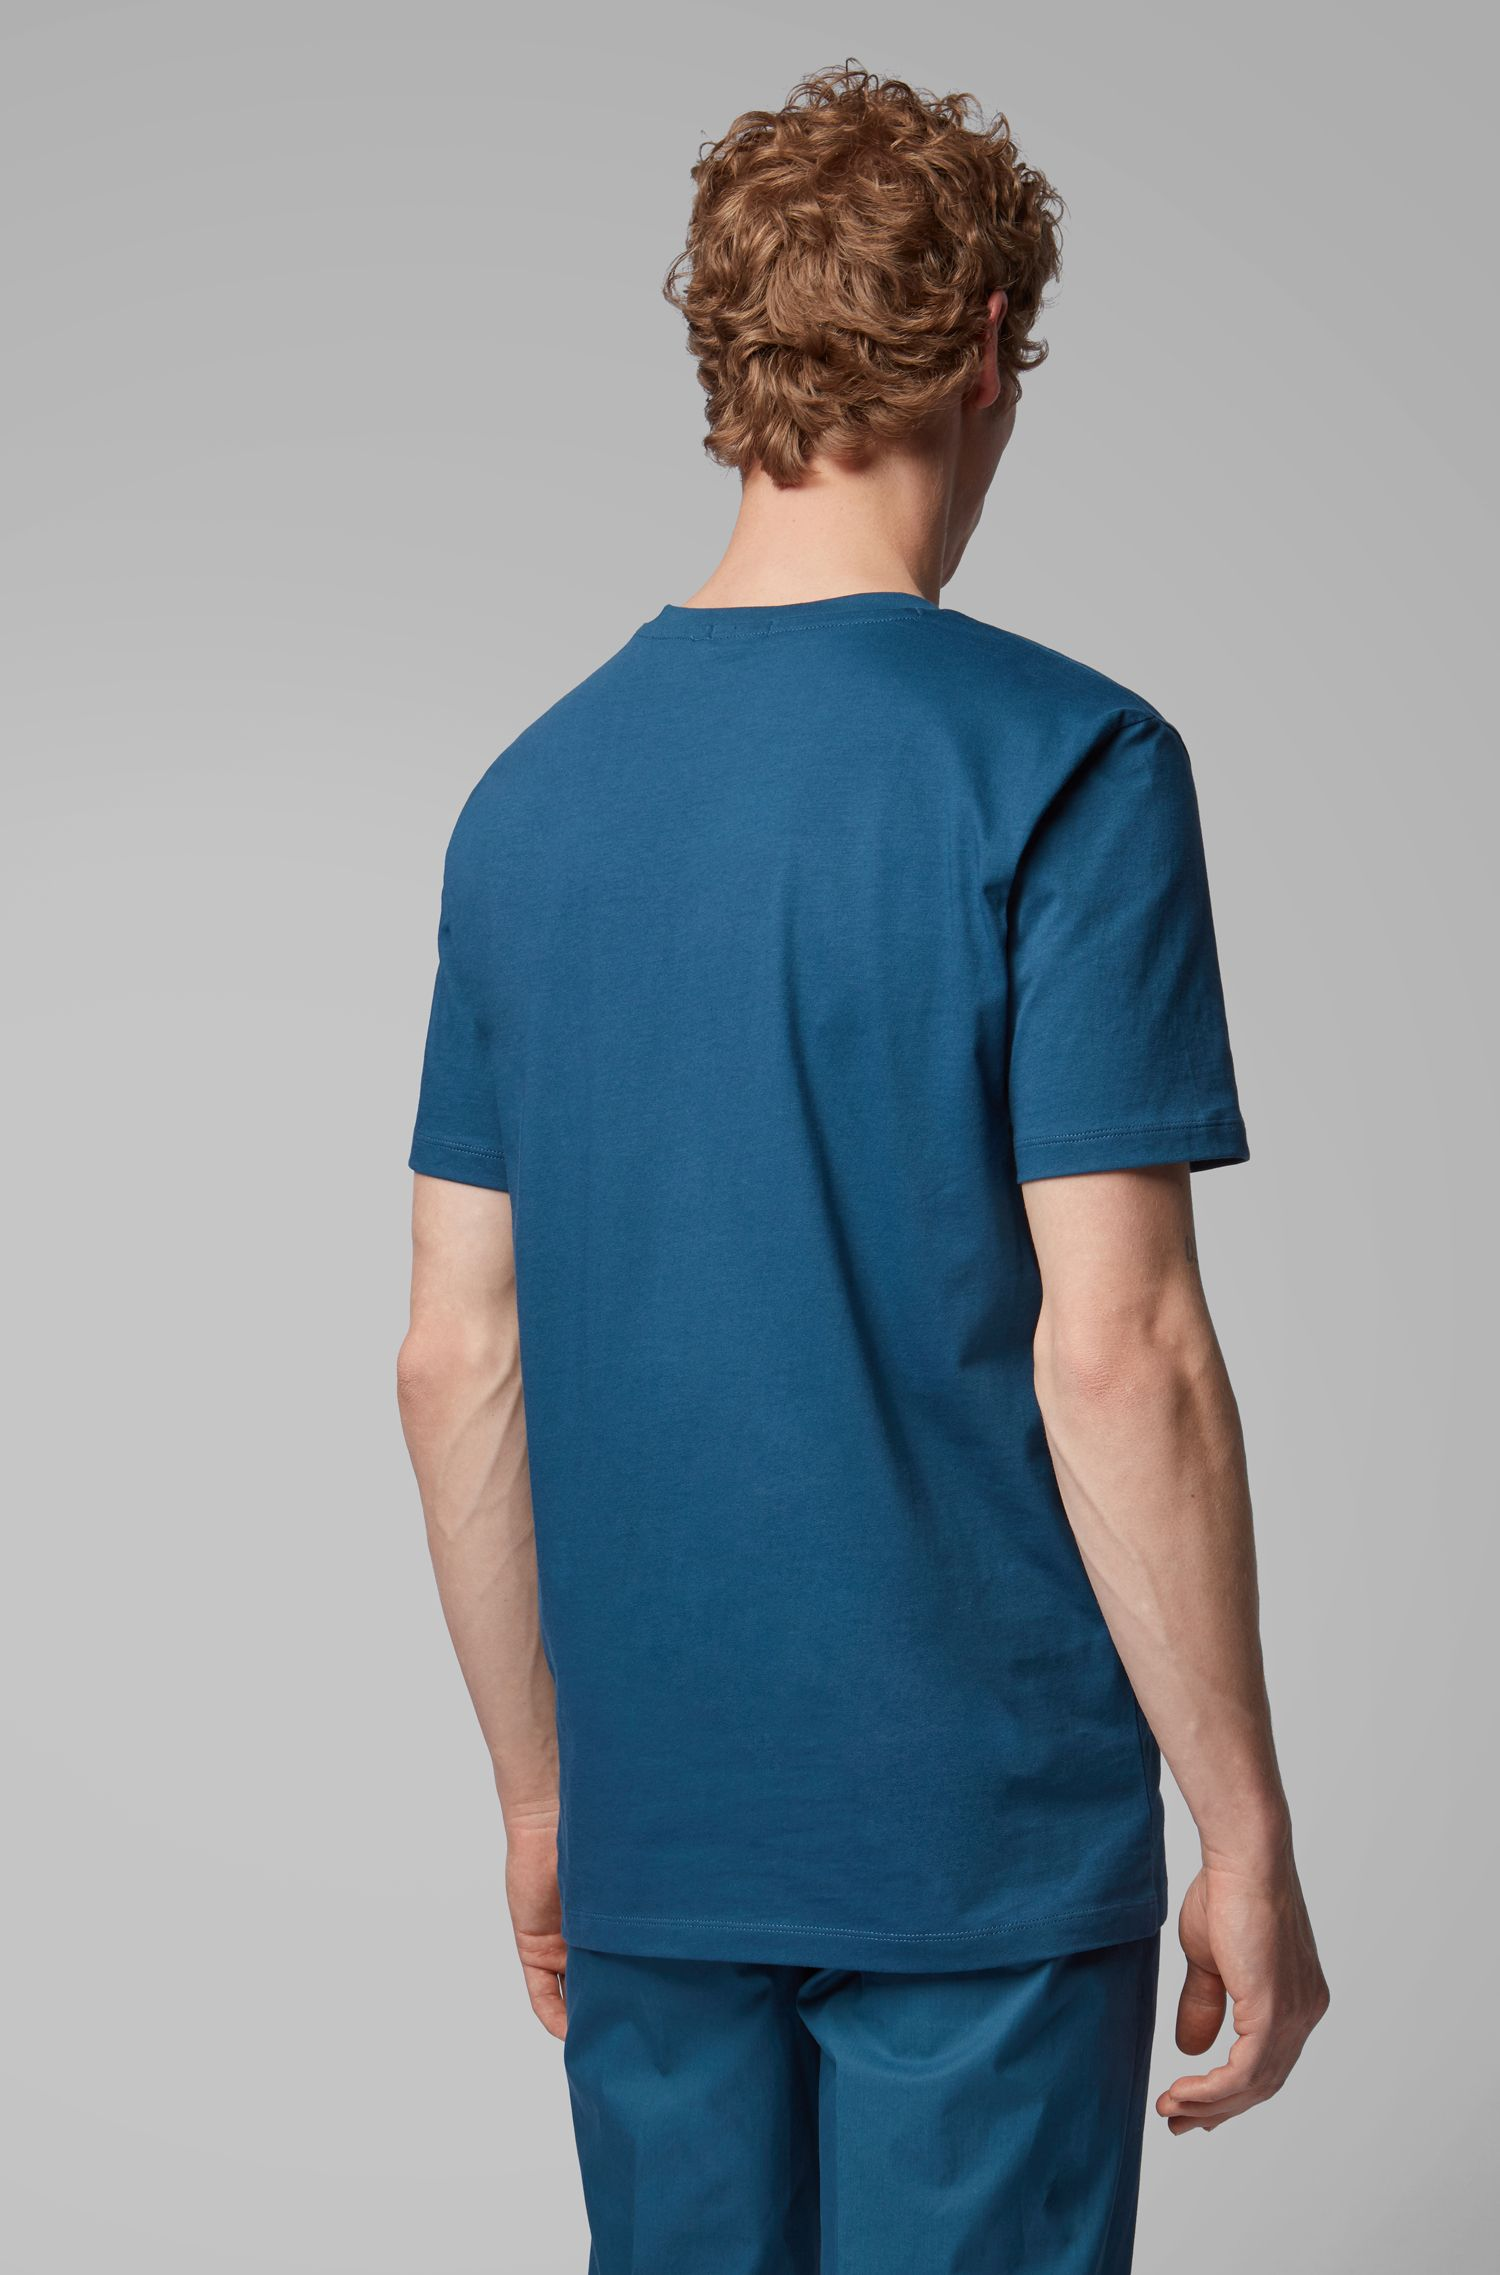 Crew-neck T-shirt in yarn-dyed single jersey, Blue